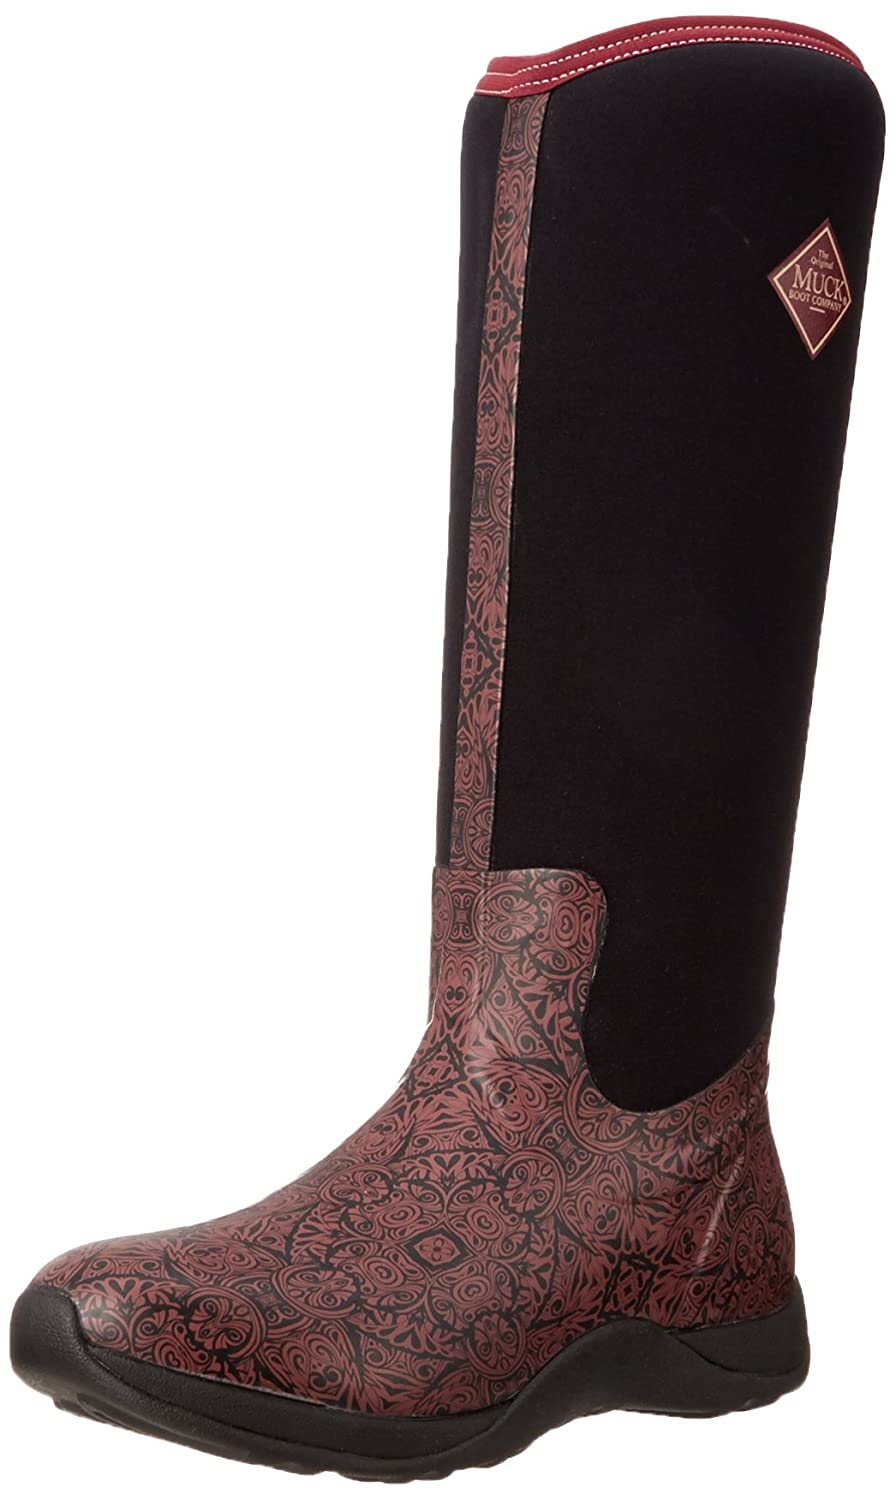 MuckBoots Women's Artic Adventure Snow Boot B00IHWA9E0 6 W US|Maroon/Aztec